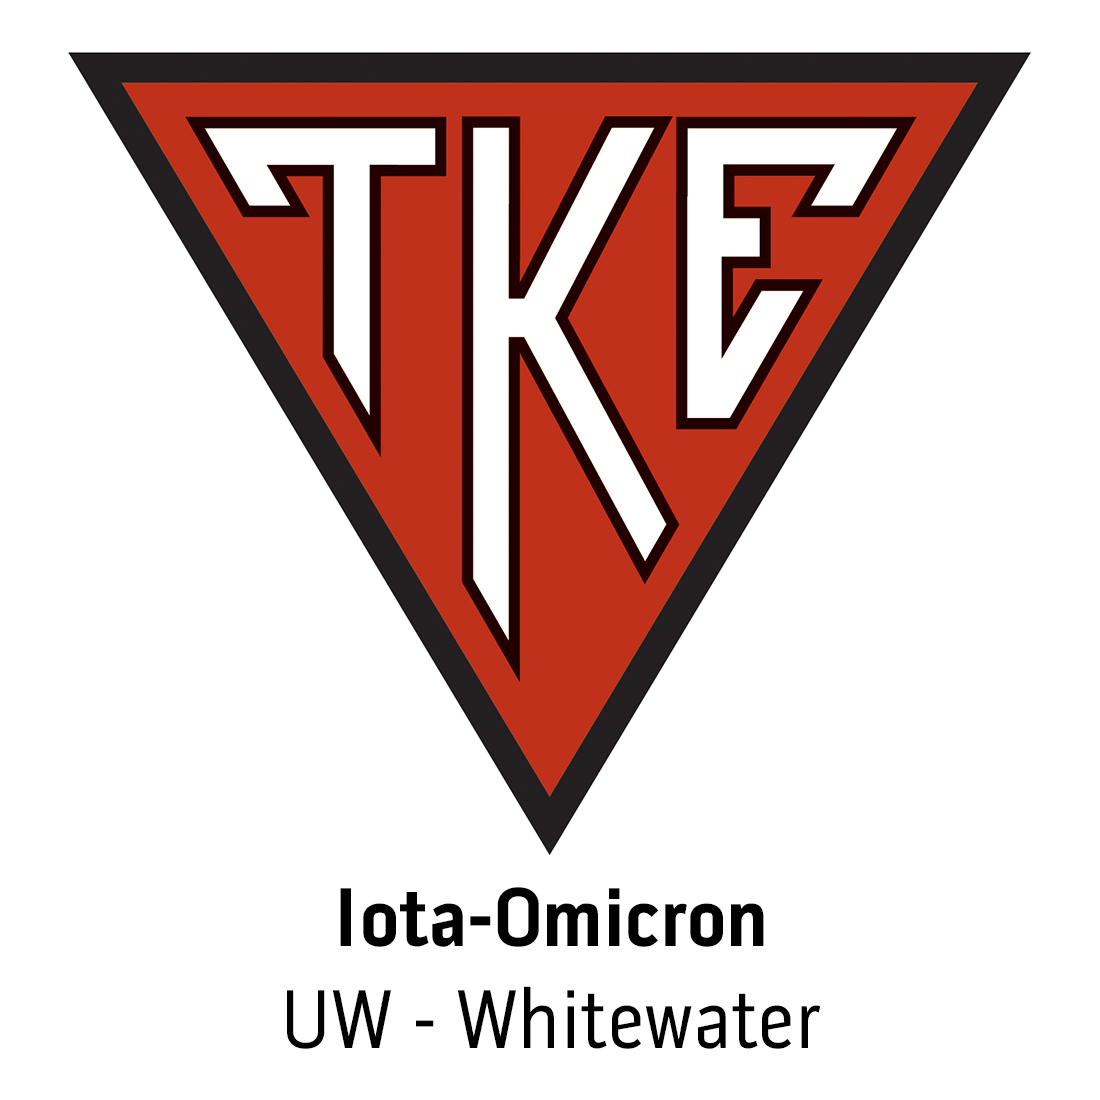 Iota-Omicron Colony at University of Wisconsin-Whitewater